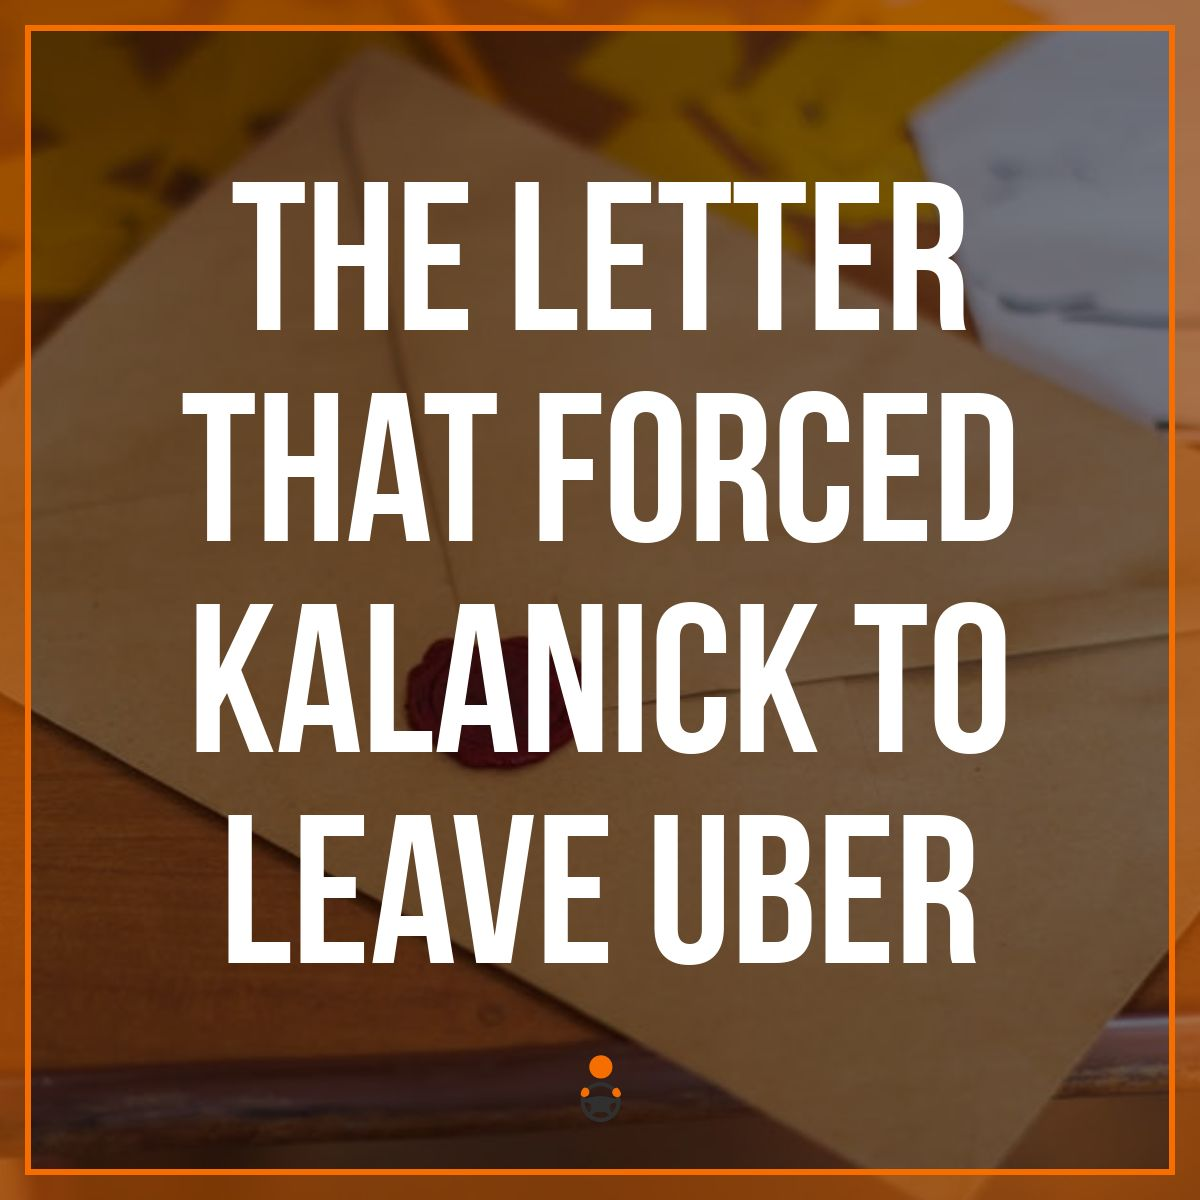 The Letter That Forced Kalanick to Leave Uber